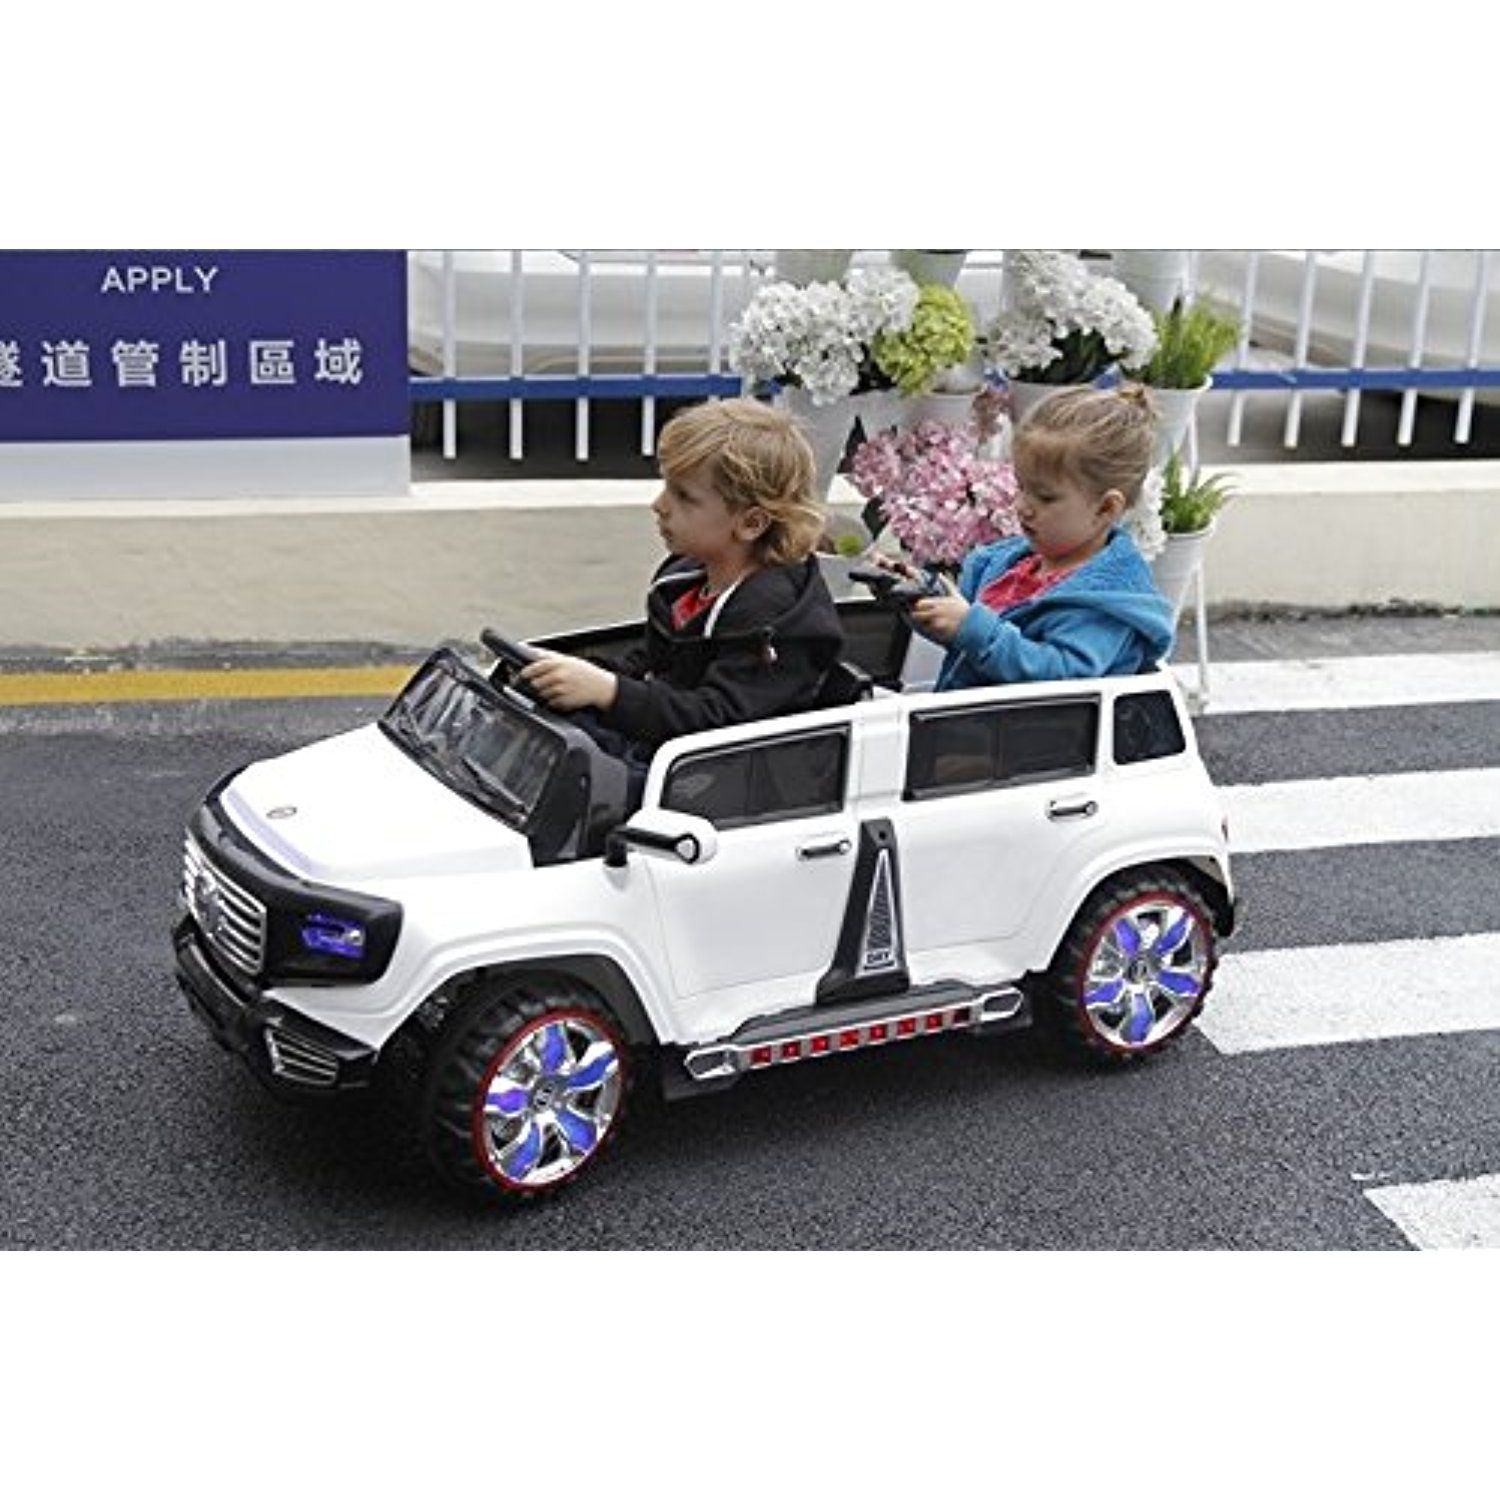 Ride On Car 2 Seater Limousine Style 4 Opening Doors 3 Speed Electric Car With Remote Control Battery Operated Car For Kids Two Motors Total 12v Electric